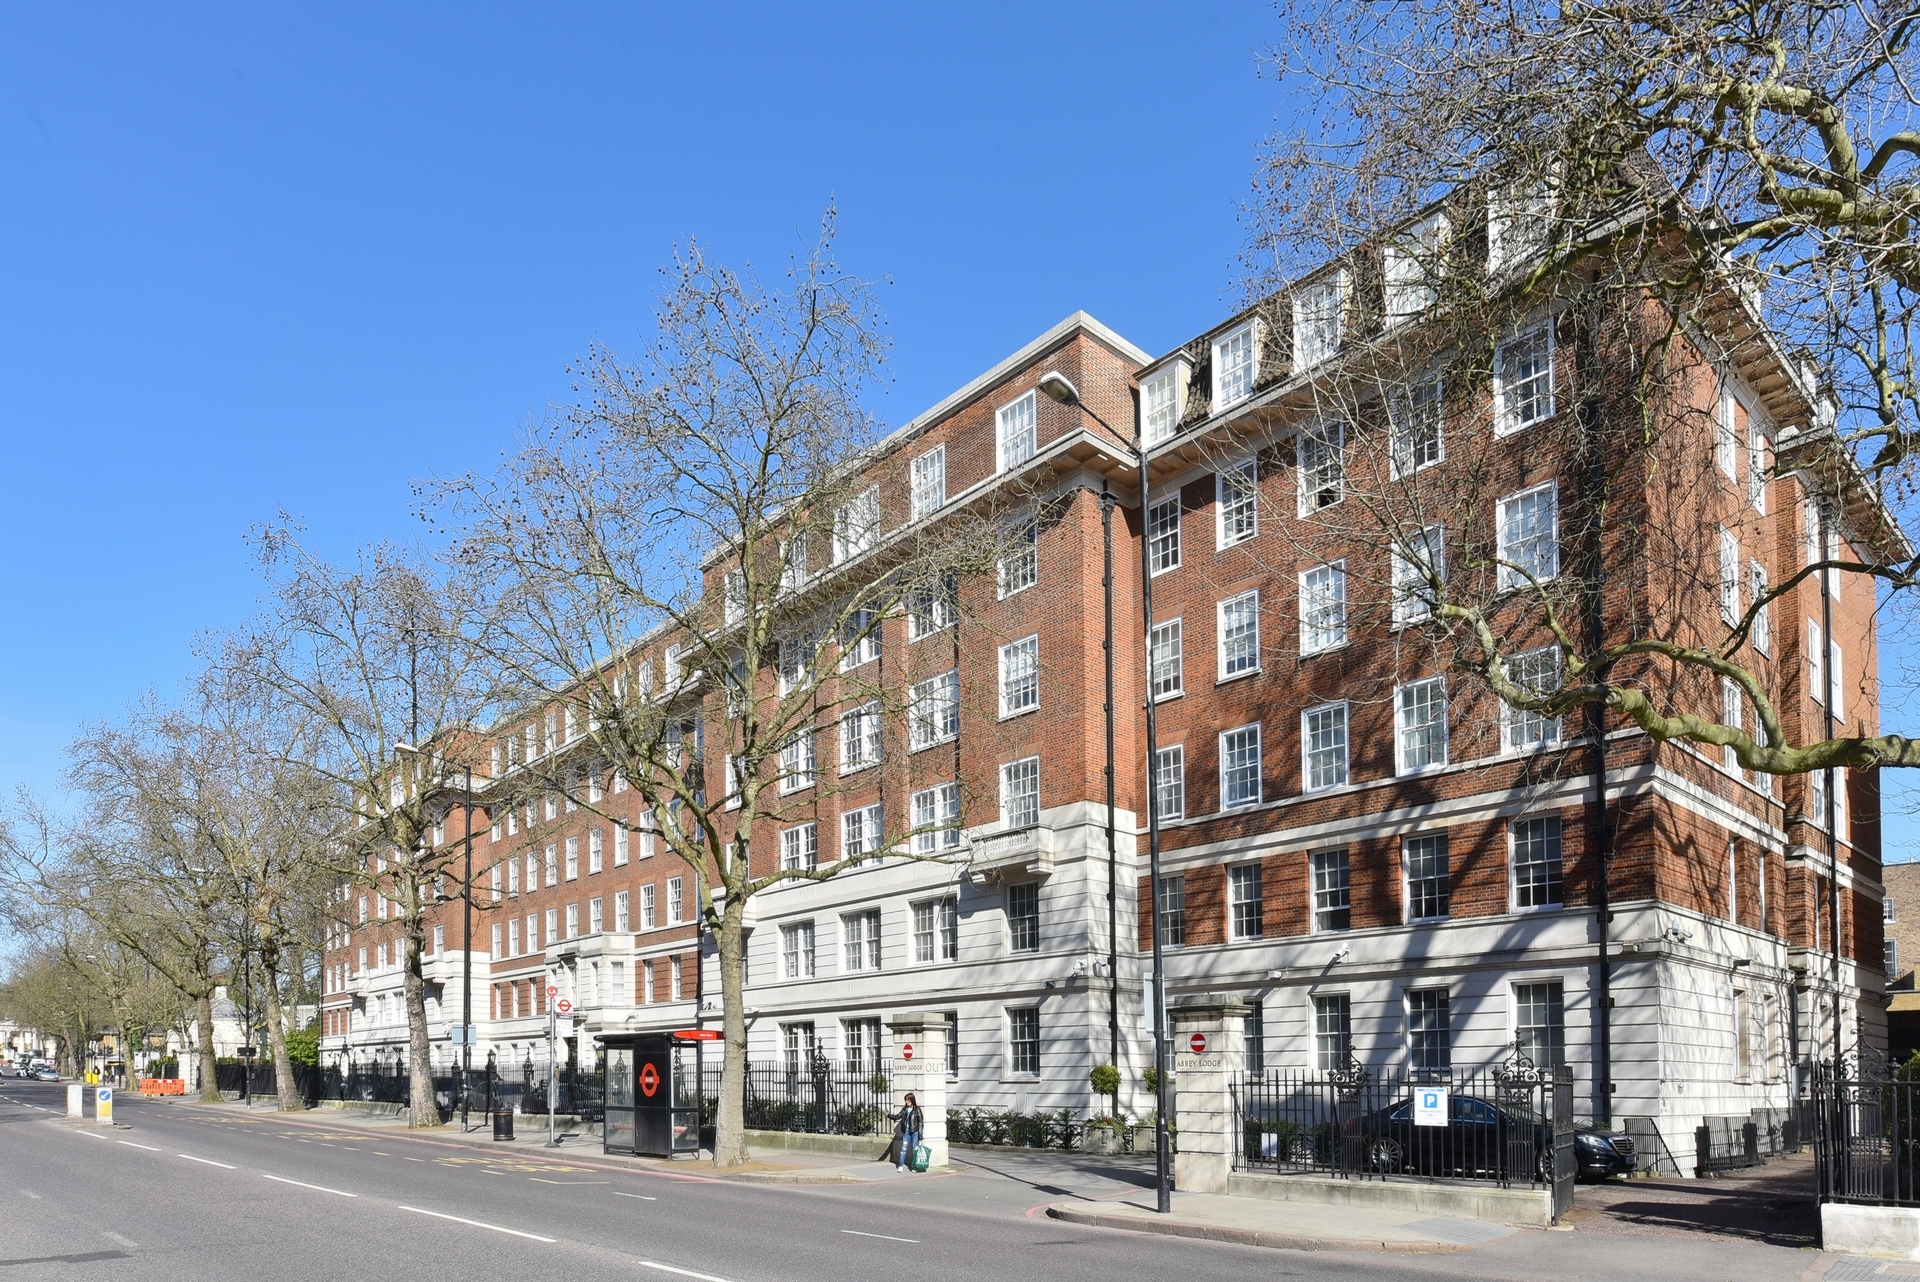 Abbey Lodge  Park Road  St Johns Wood  London  NW8